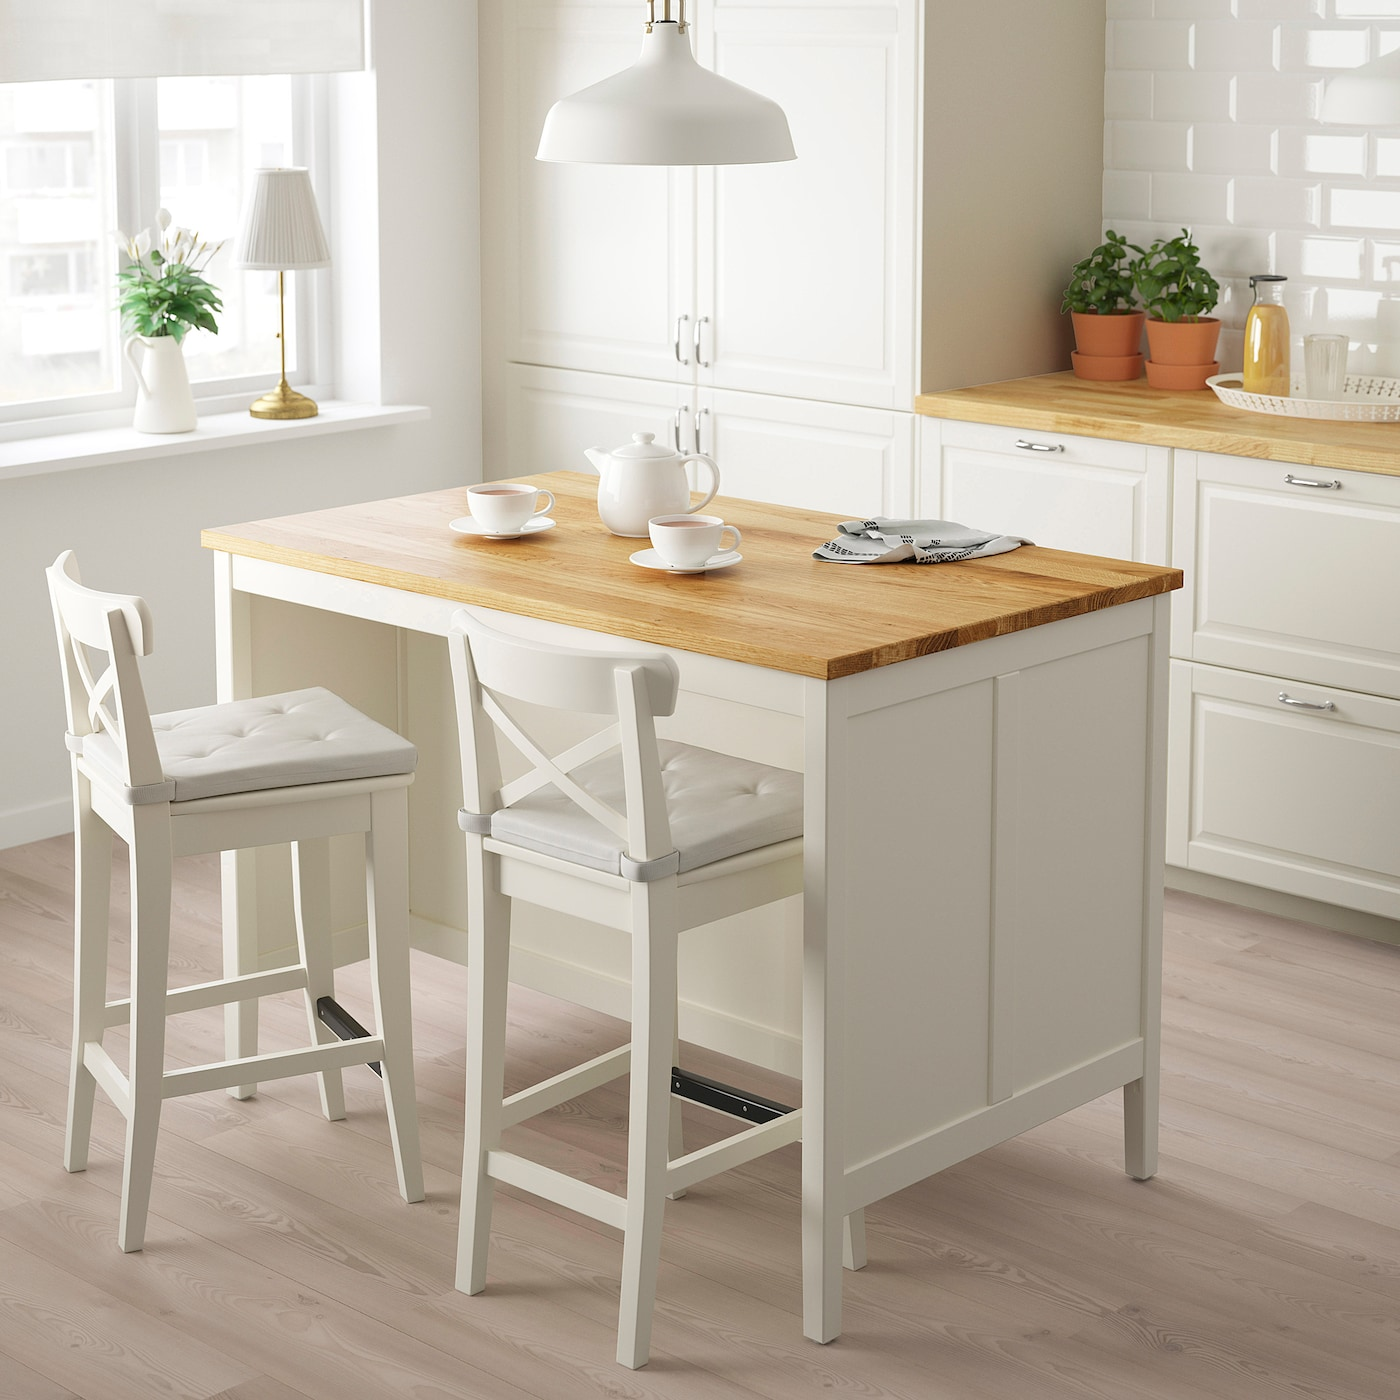 Tornviken Kitchen Island Off White Oak Shop Here Ikea